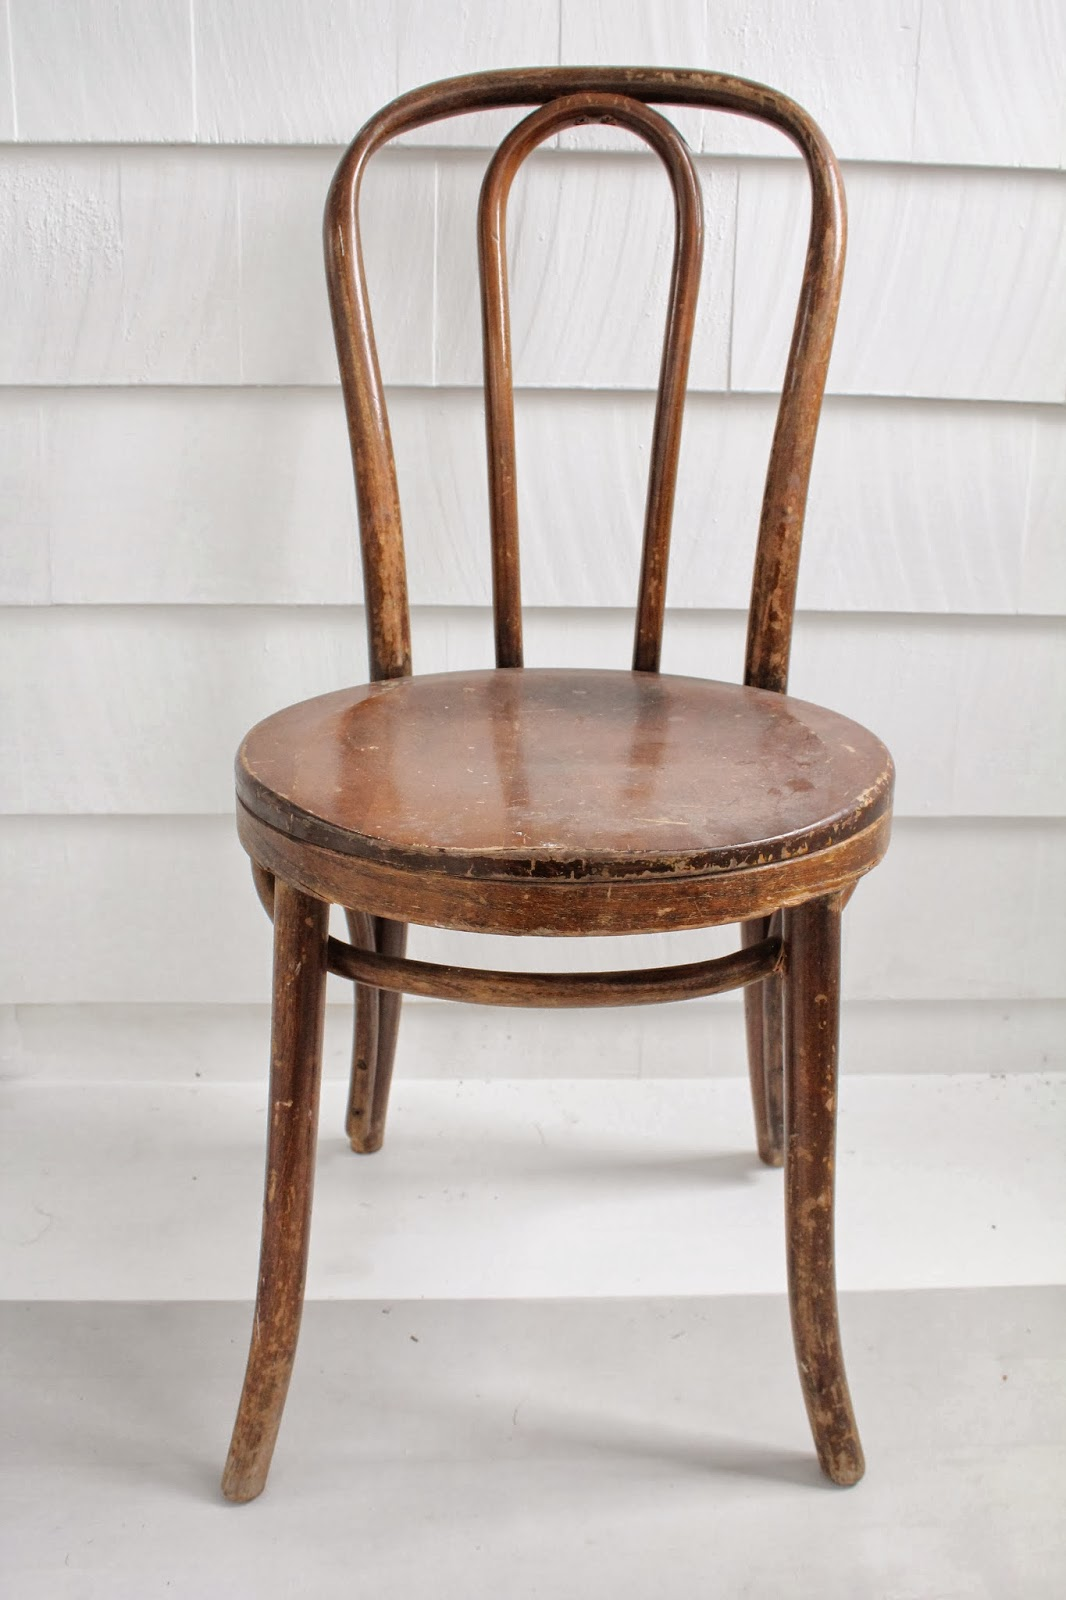 Antique thonet bentwood chair - She Wanted 20 Per Chair 80 Dollars For Four Thonet Bentwood Chairs I Ve Purchased Folding Chairs For The Same Price Sold